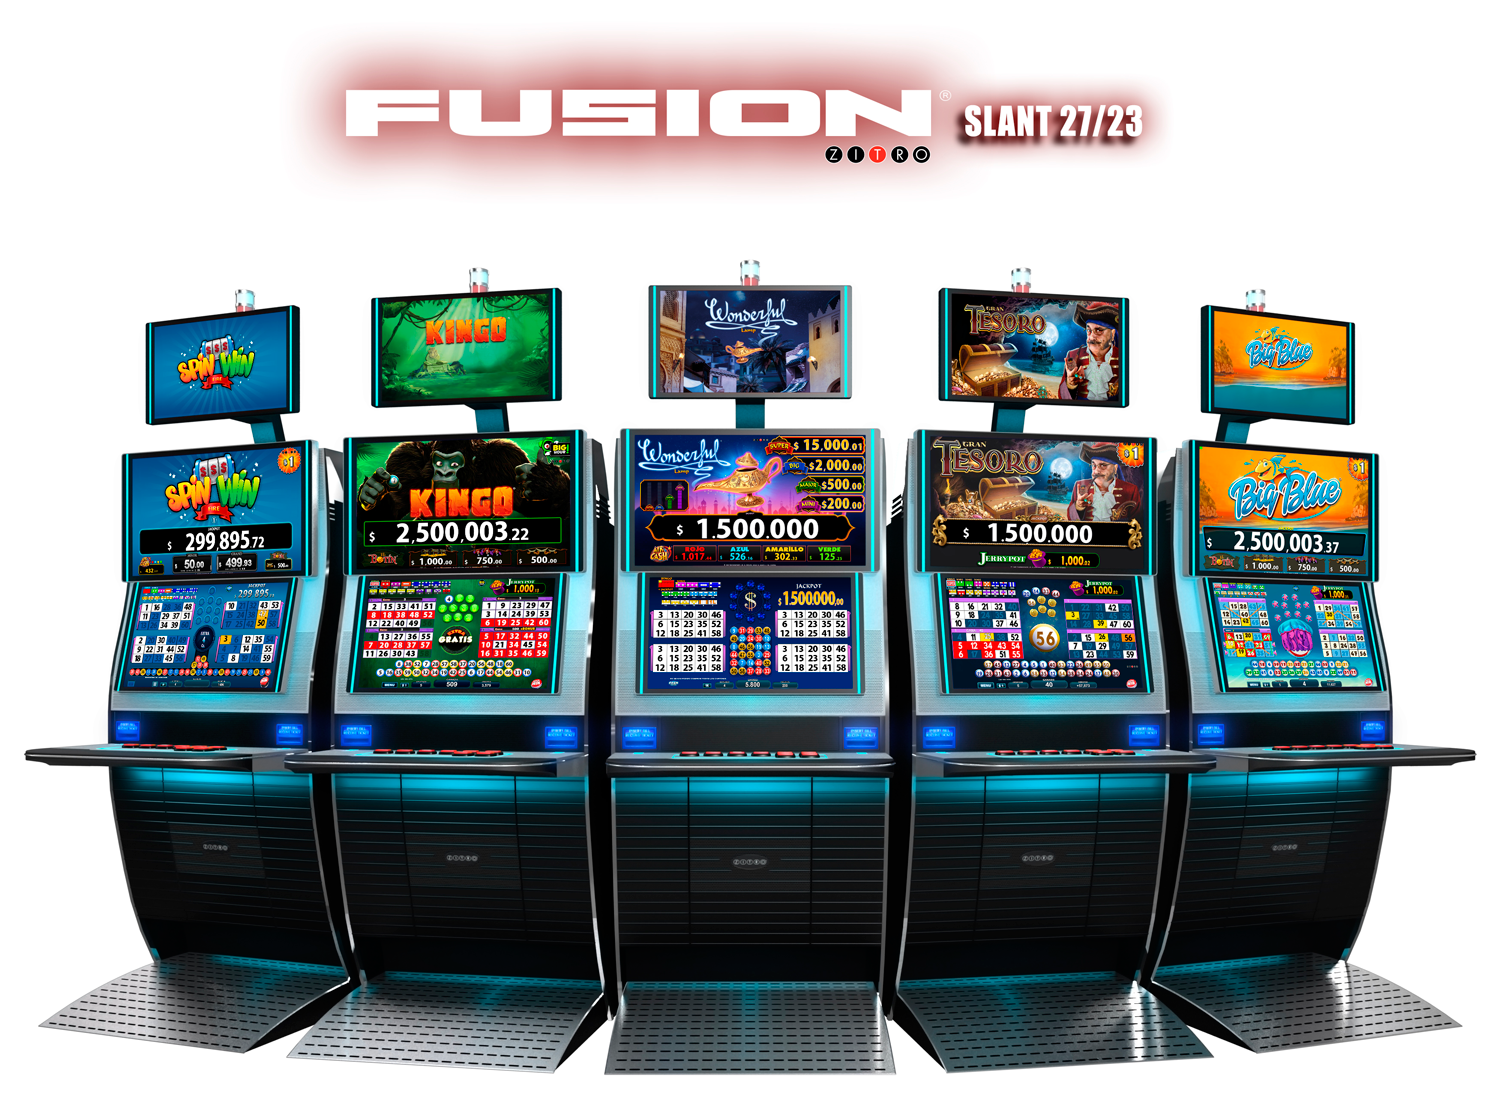 PlayCity bets on the new Fusion cabinets from Zitro